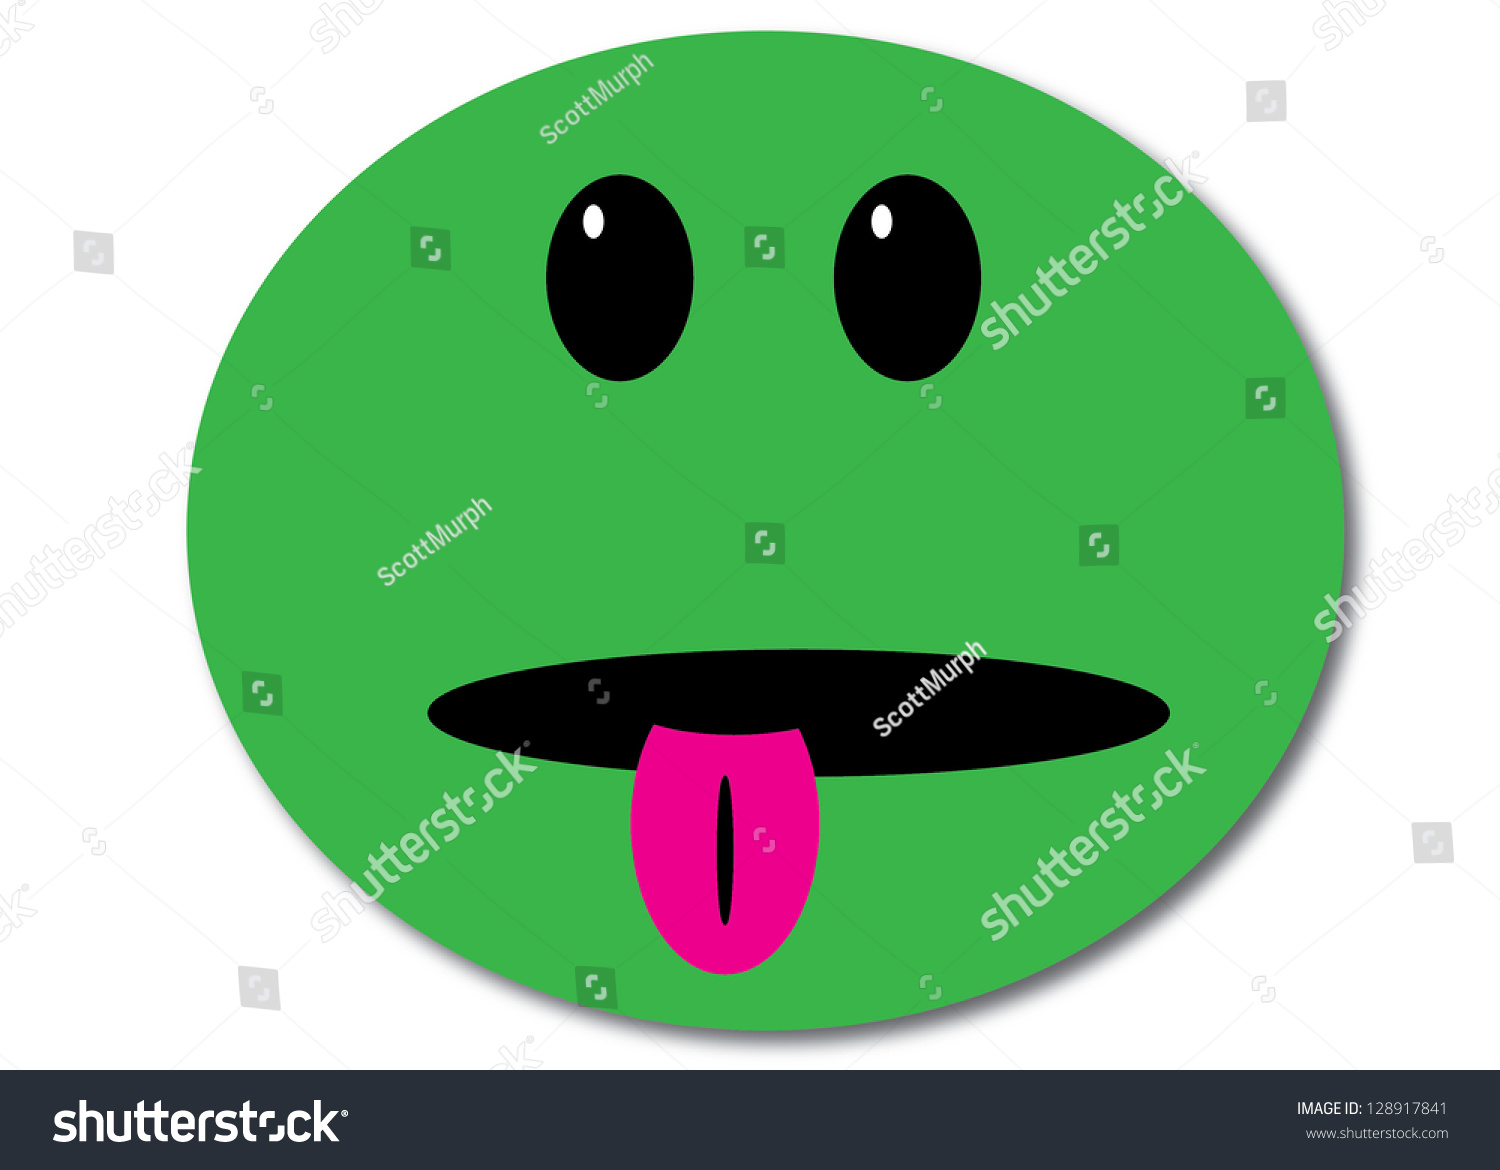 Green Smiley Face Stock Photos: Green Smiley Face With Tongue Sticking Out Stock Photo